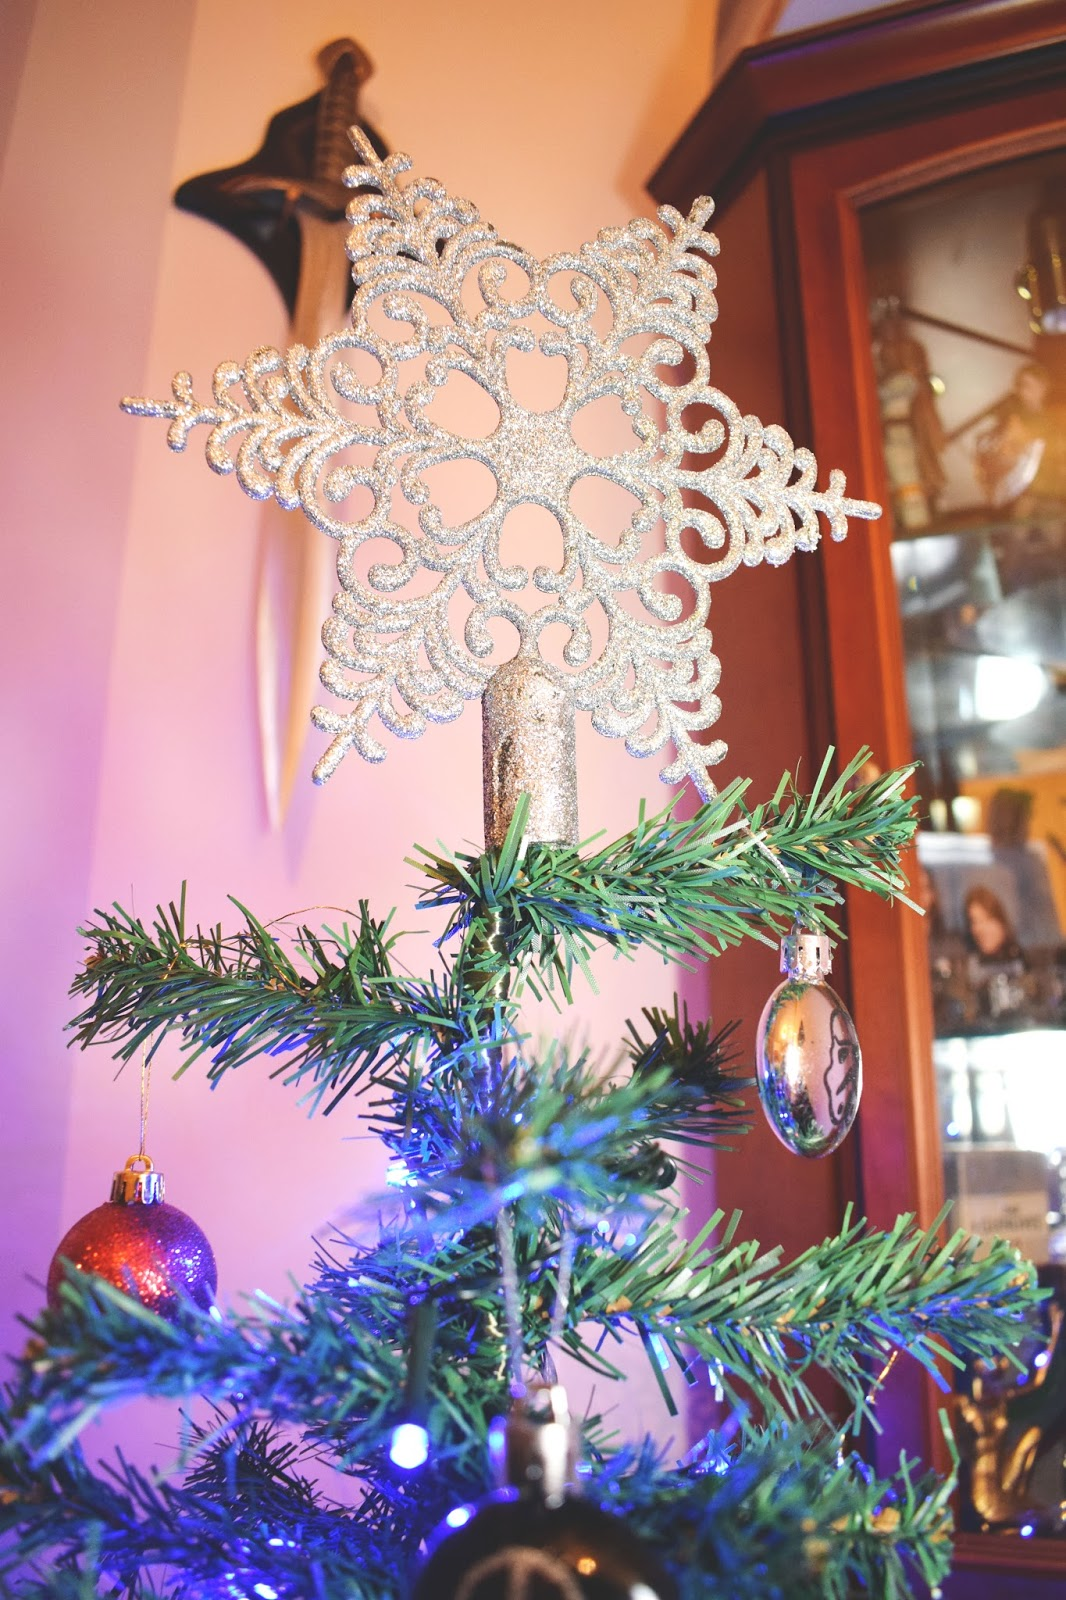 lebellelavie - Christmas decorations for under £20